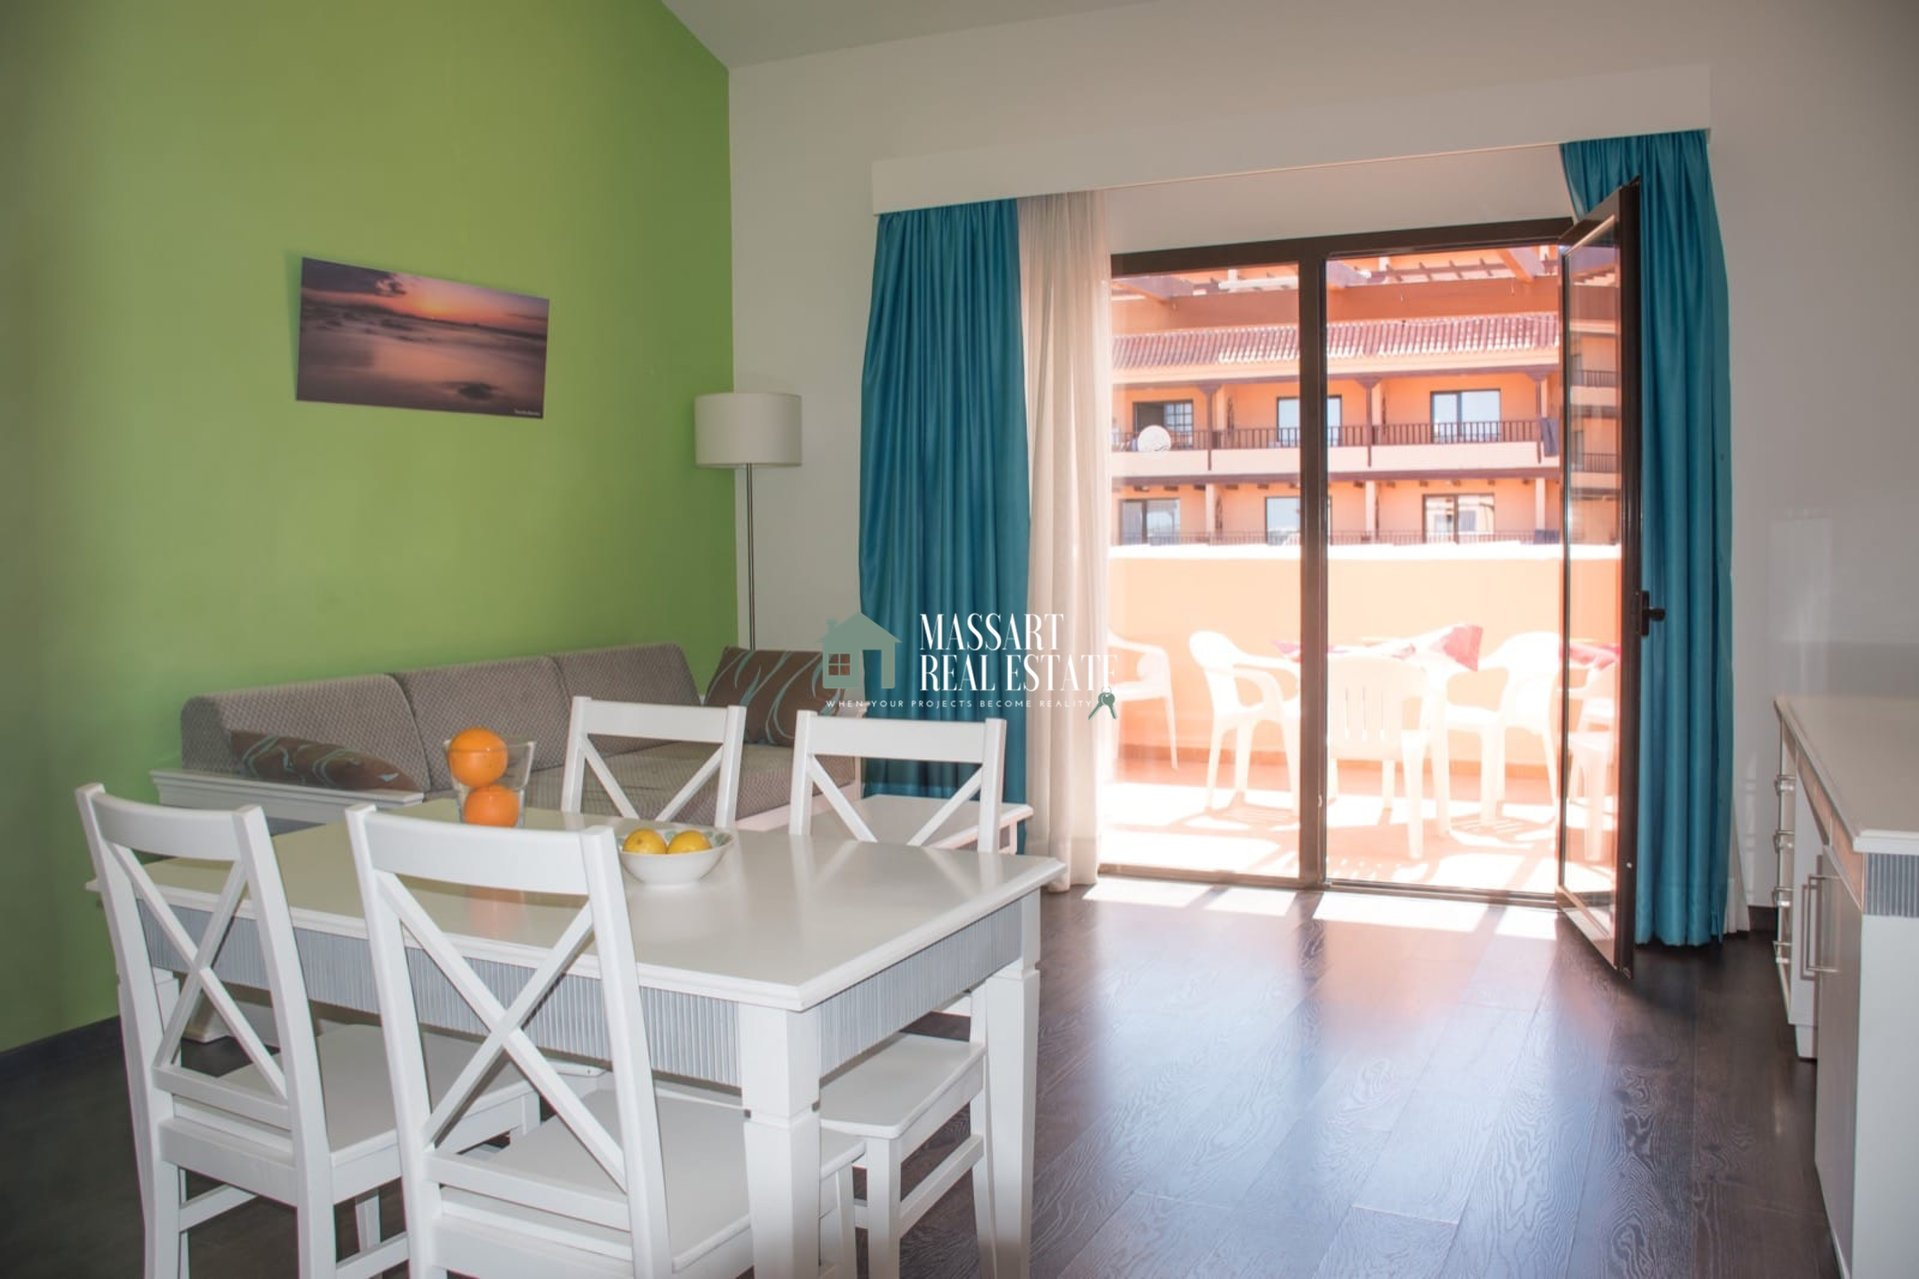 For sale in the residential complex Los Alisios, in the strategic area of Los Cristianos, 66 m2 penthouse characterized by its cozy style and its good state of preservation.